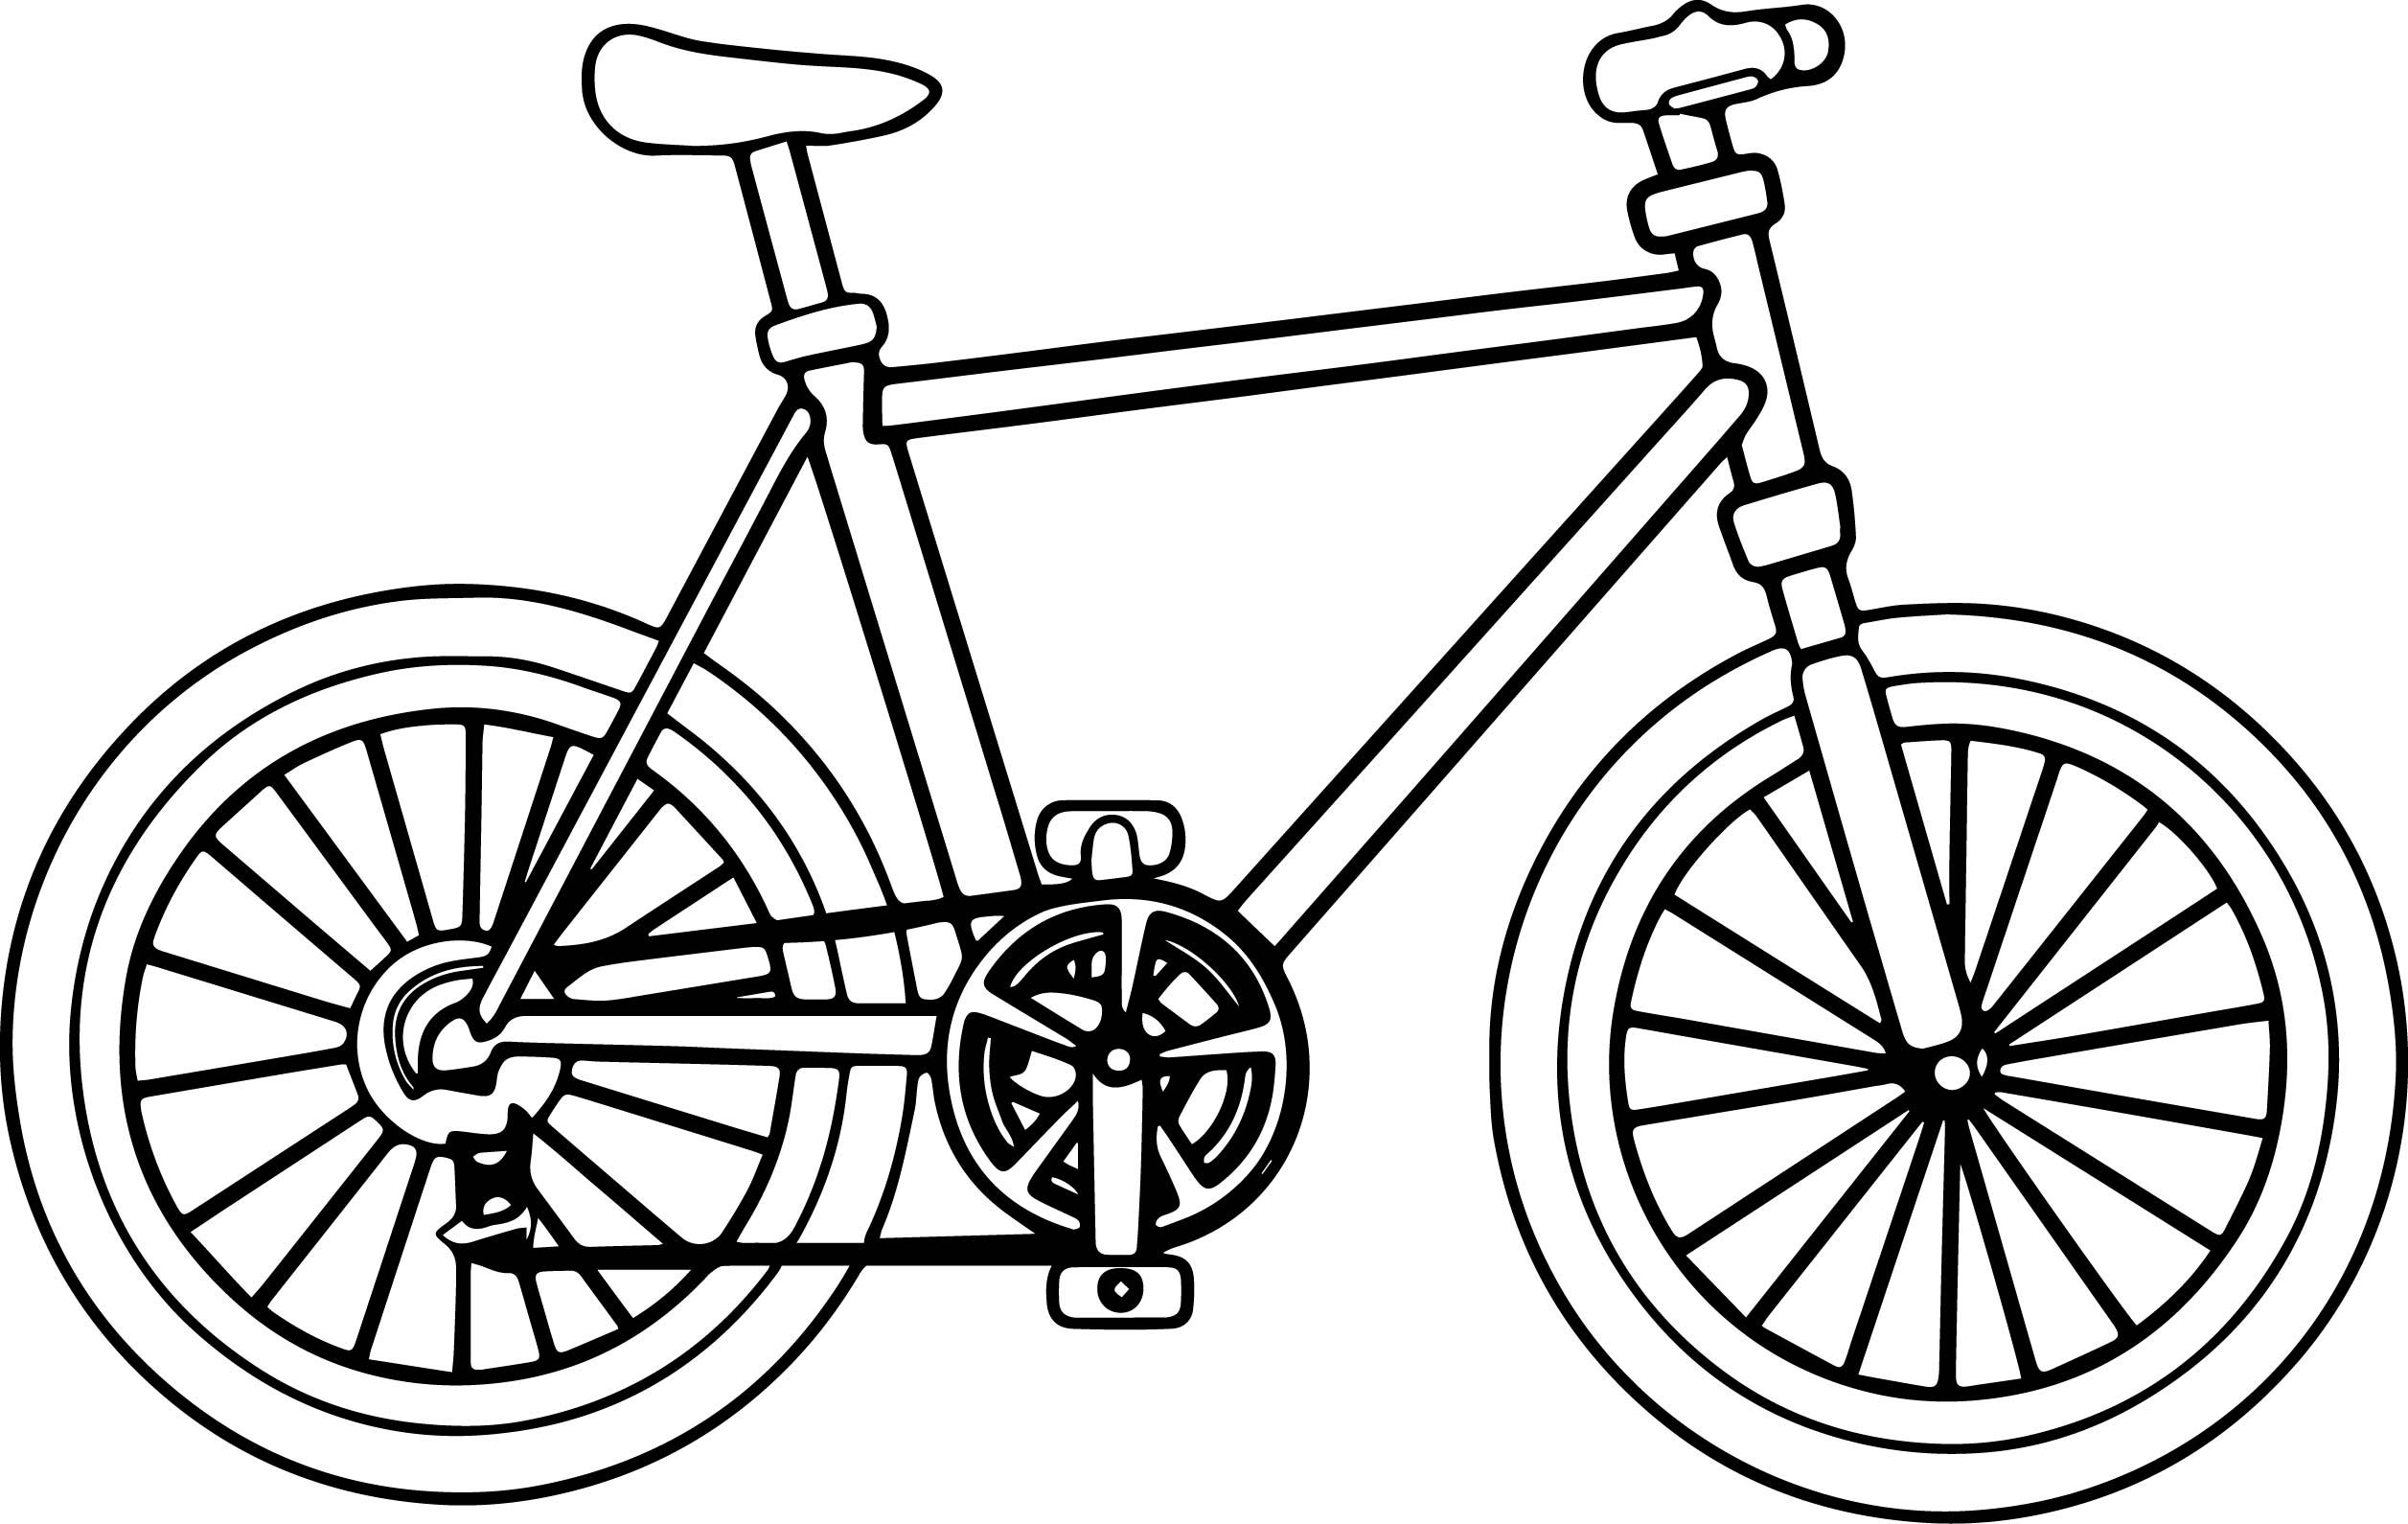 awesome Big Bike Biycle Coloring Page  Coloring pages for kids